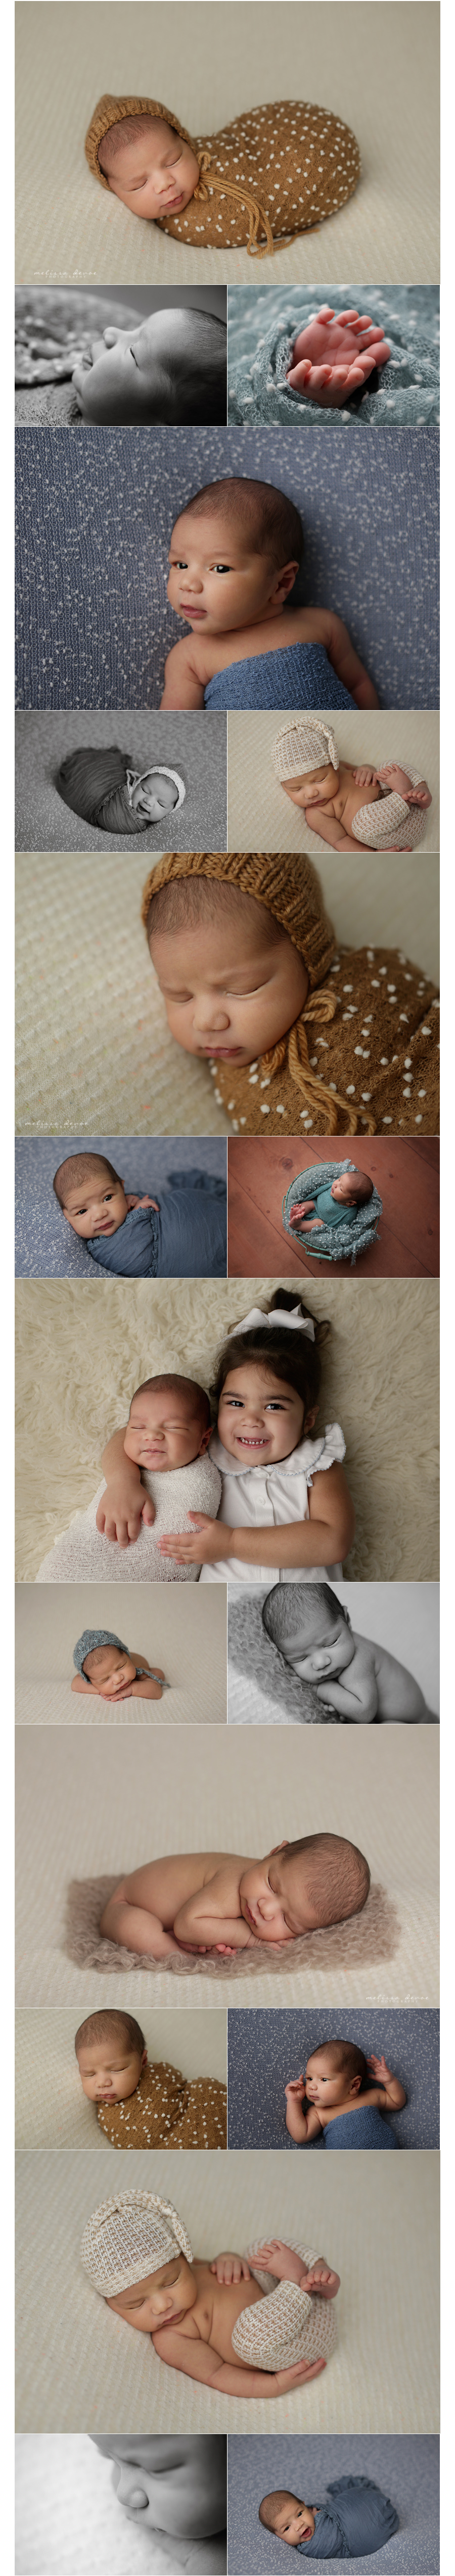 Melissa DeVoe Raleigh Durham NC Newborn Photographer